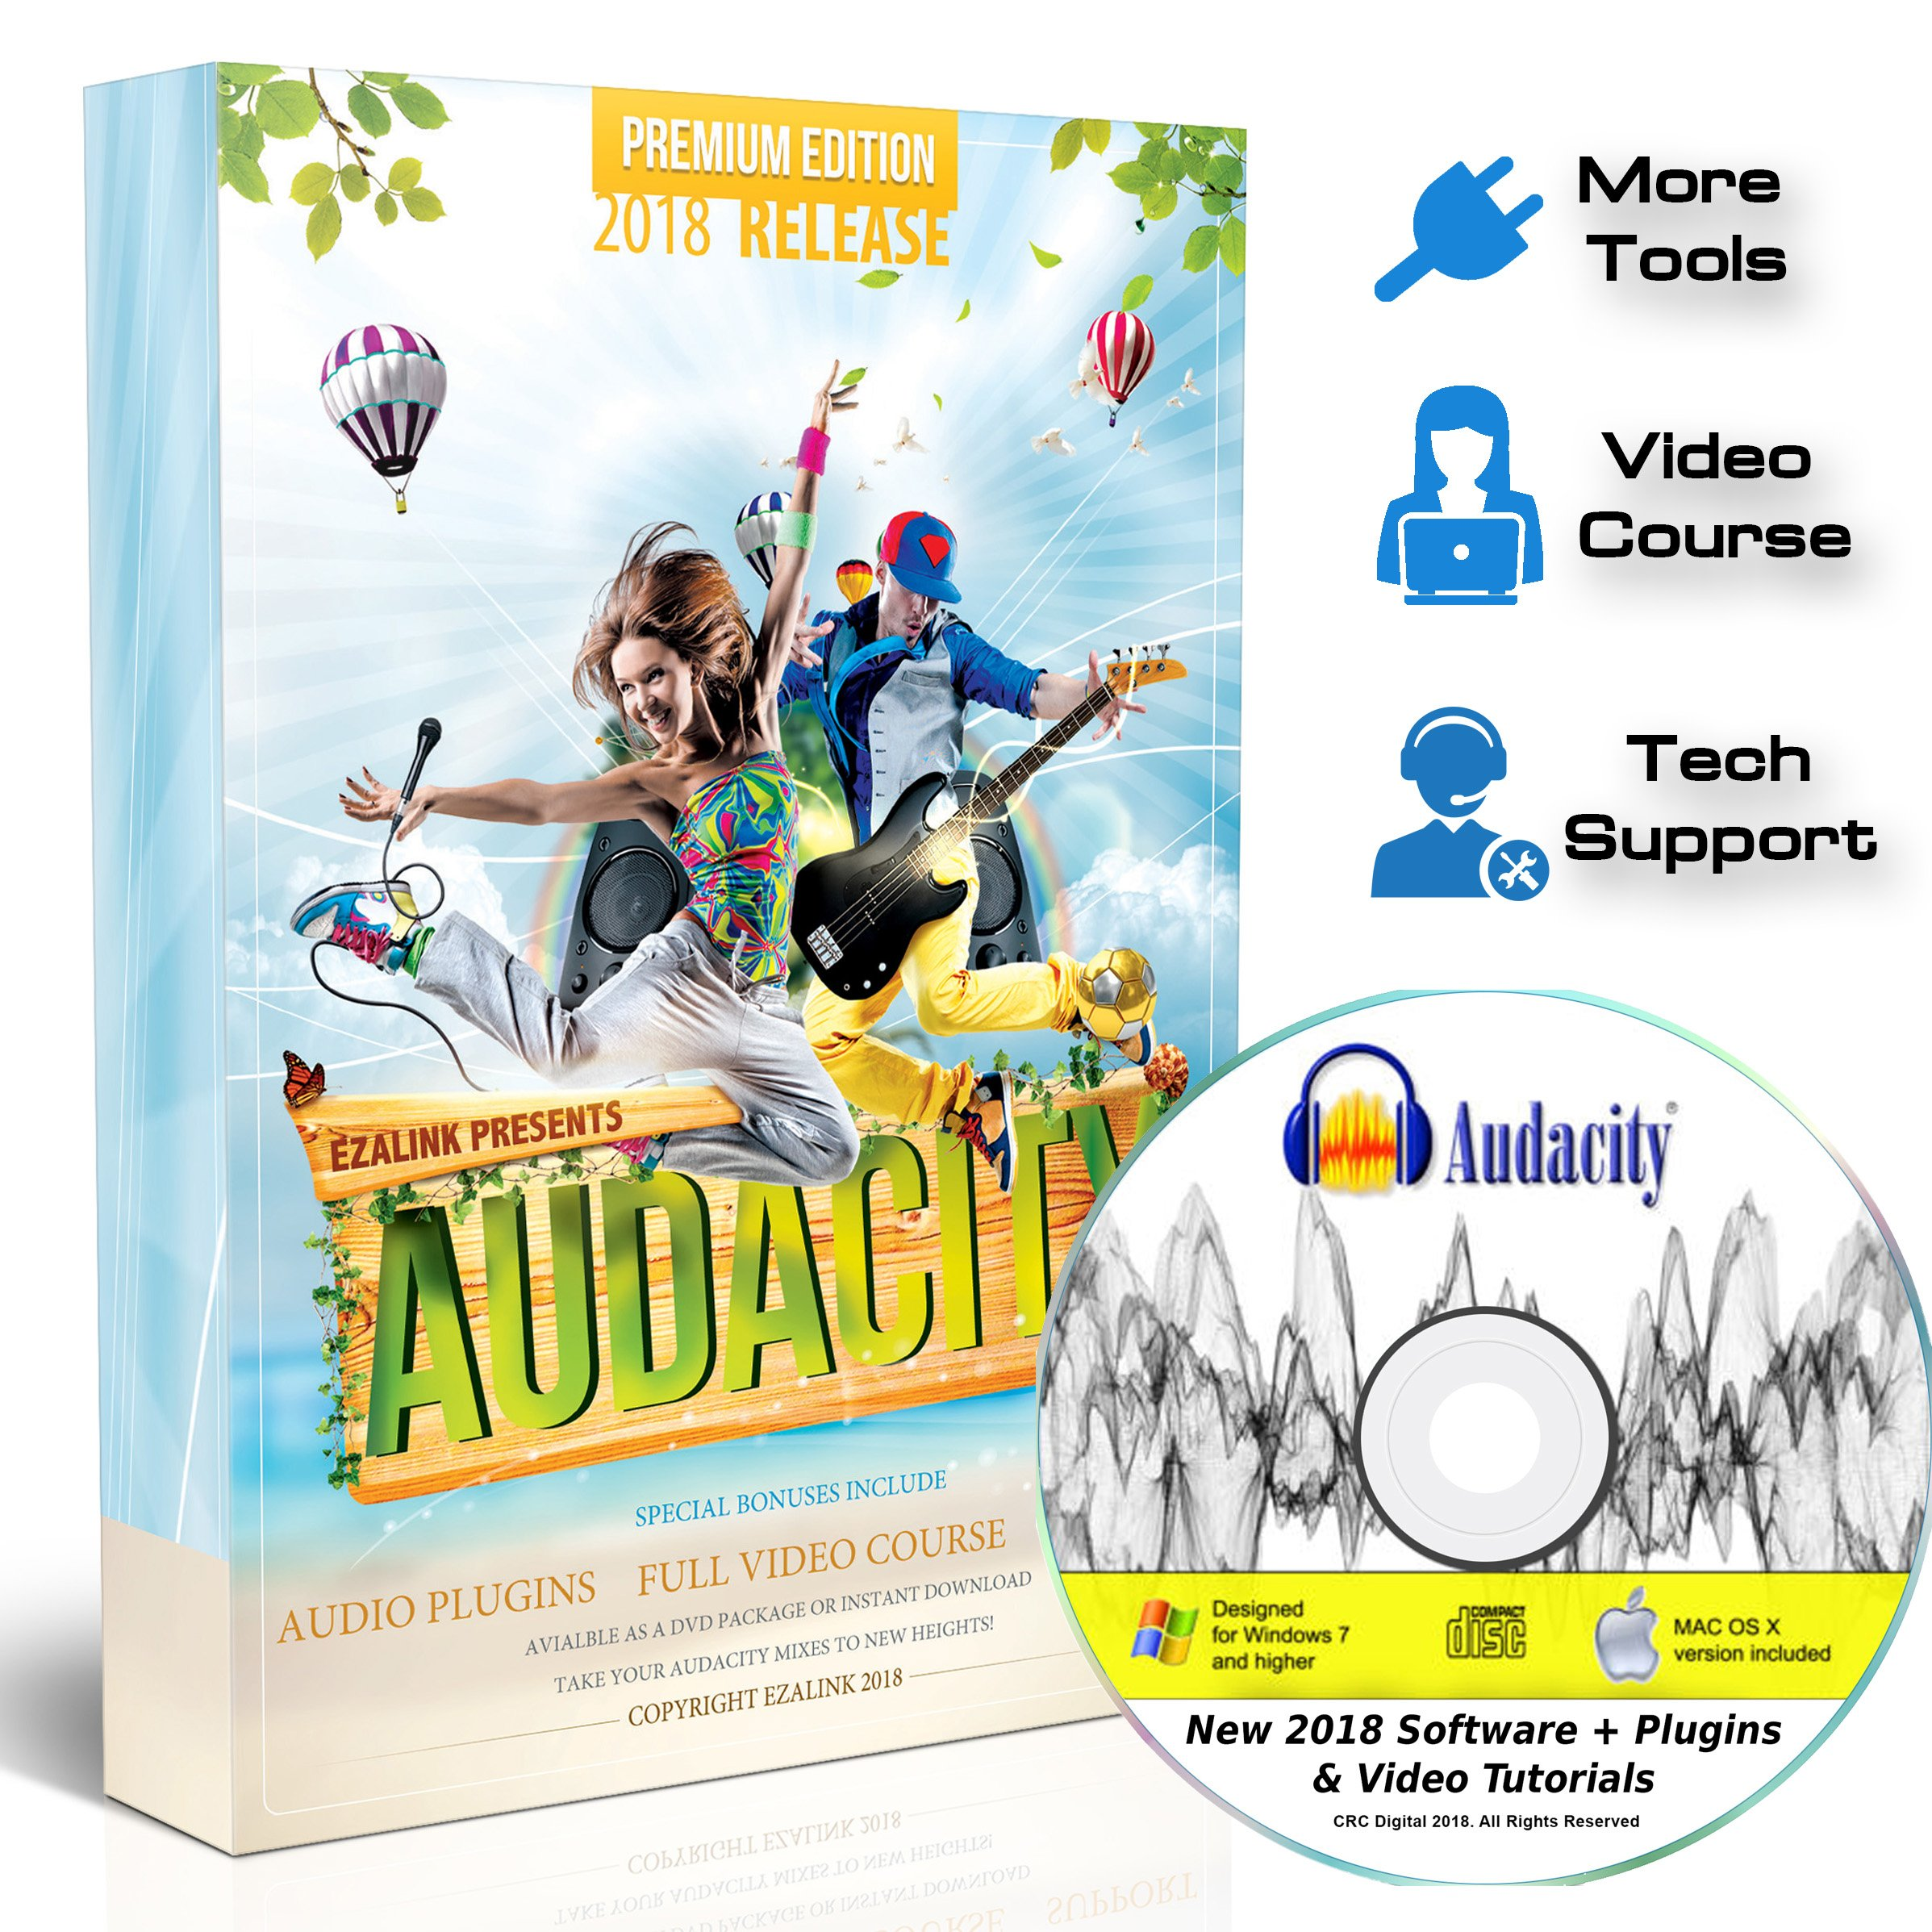 Audacity Audio Recording & Editing Software - Professional Sound Recorder Software for Windows PC & Mac - Digital Player for Common files: WAV, AIFF, MP3, OGG [Premium Edition] by Markt+Technik